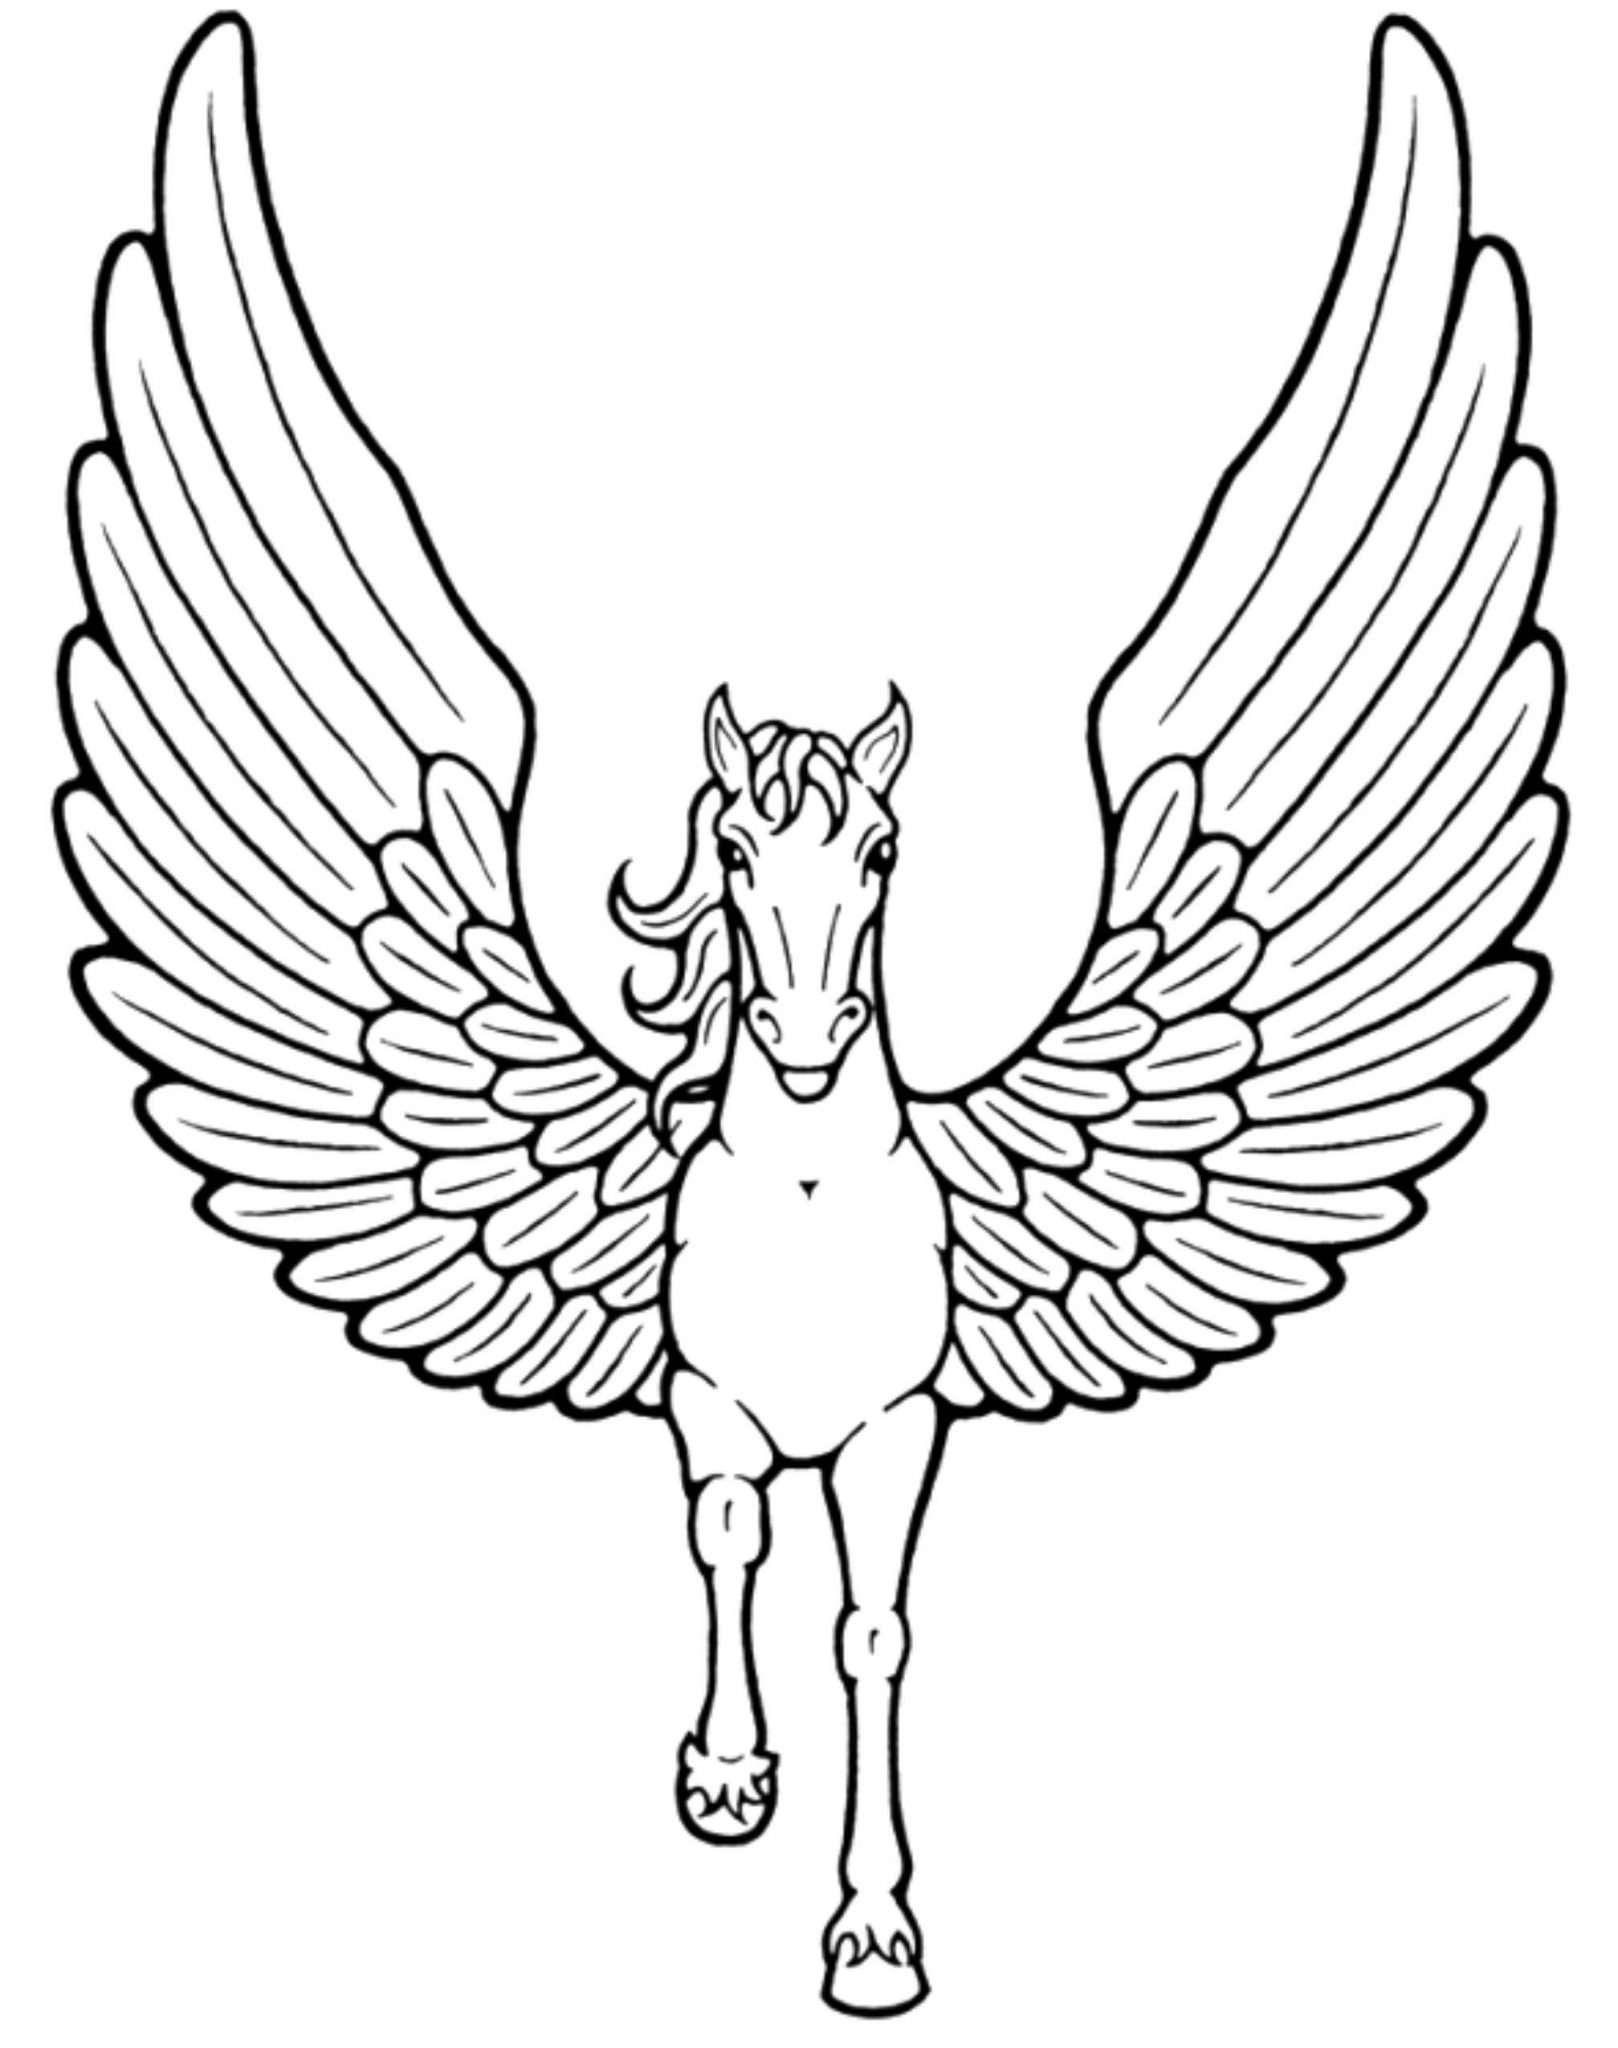 unicorn pictures for coloring april 2015 gtgt disney coloring pages for pictures coloring unicorn